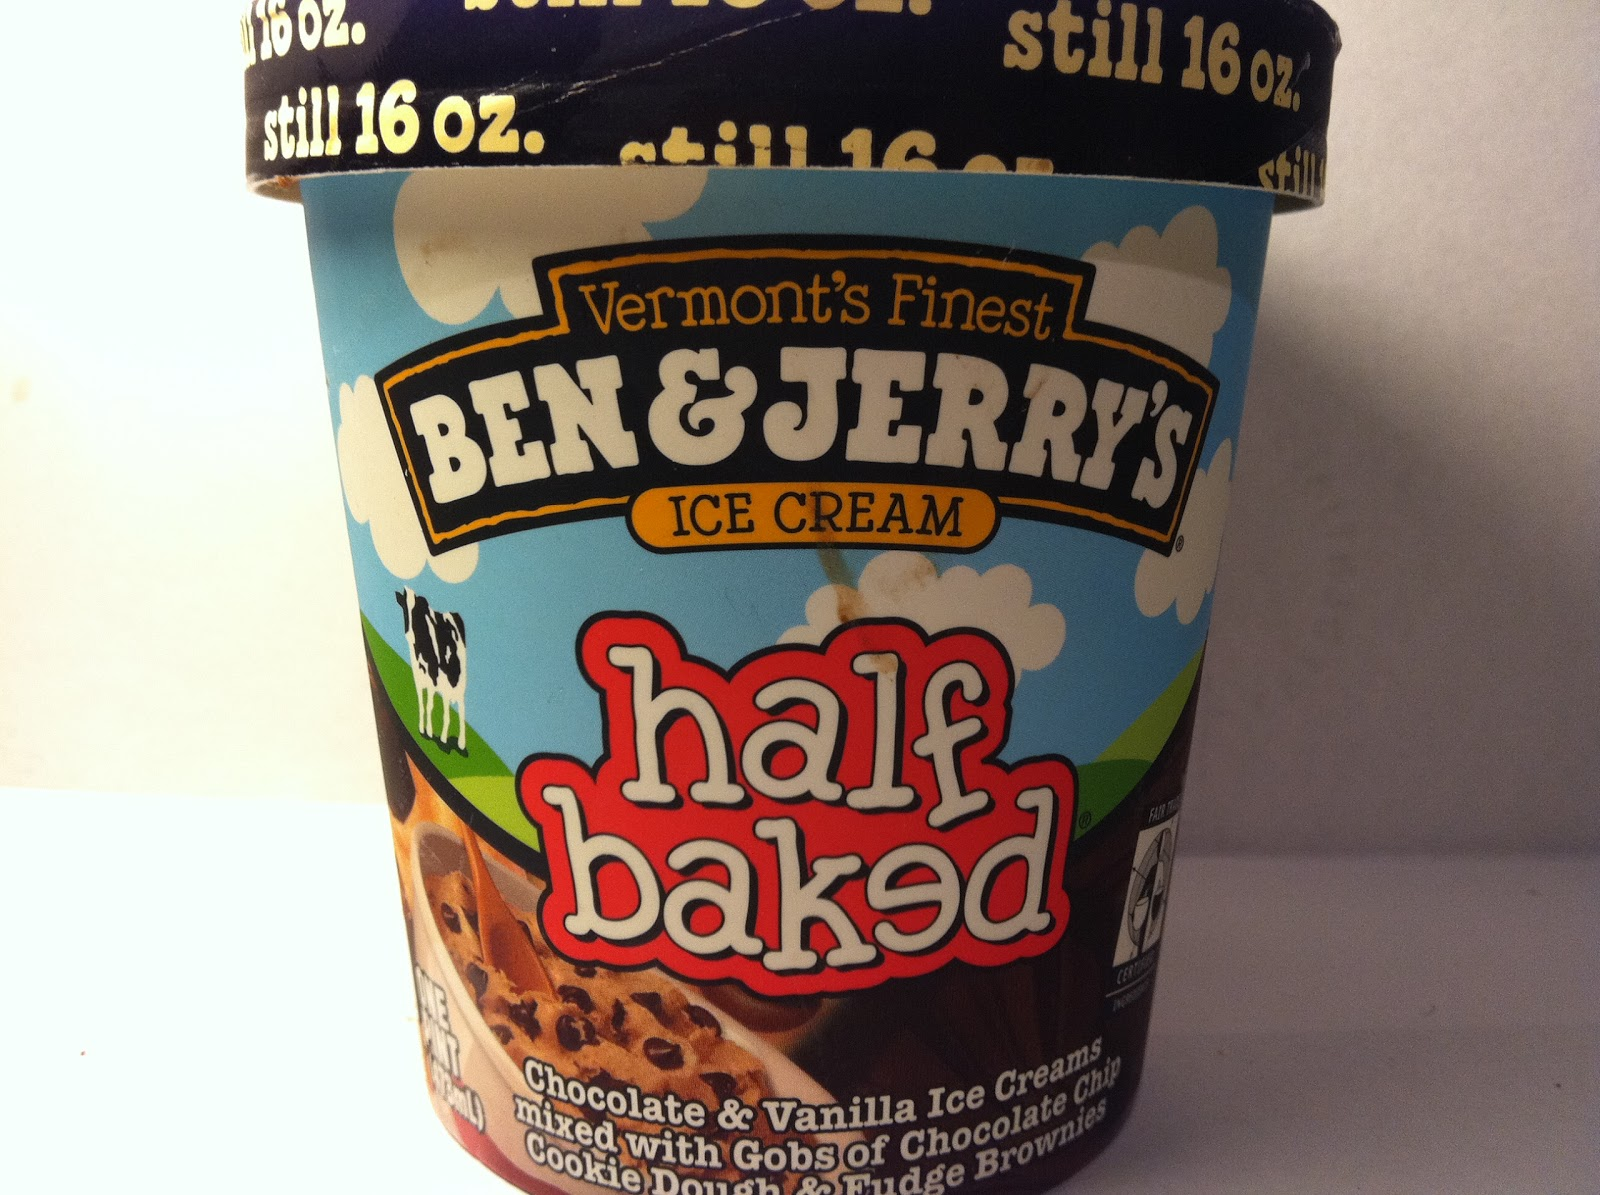 ben jerrys ice cream essay The chocolate and vanilla ice creams are standard ben & jerry's bases, and the brownie pieces are ok, but the star is the core even as a non-chocoholic, this is a darn good flavor and easily my second favorite core flavor behind spectacular speculoos.